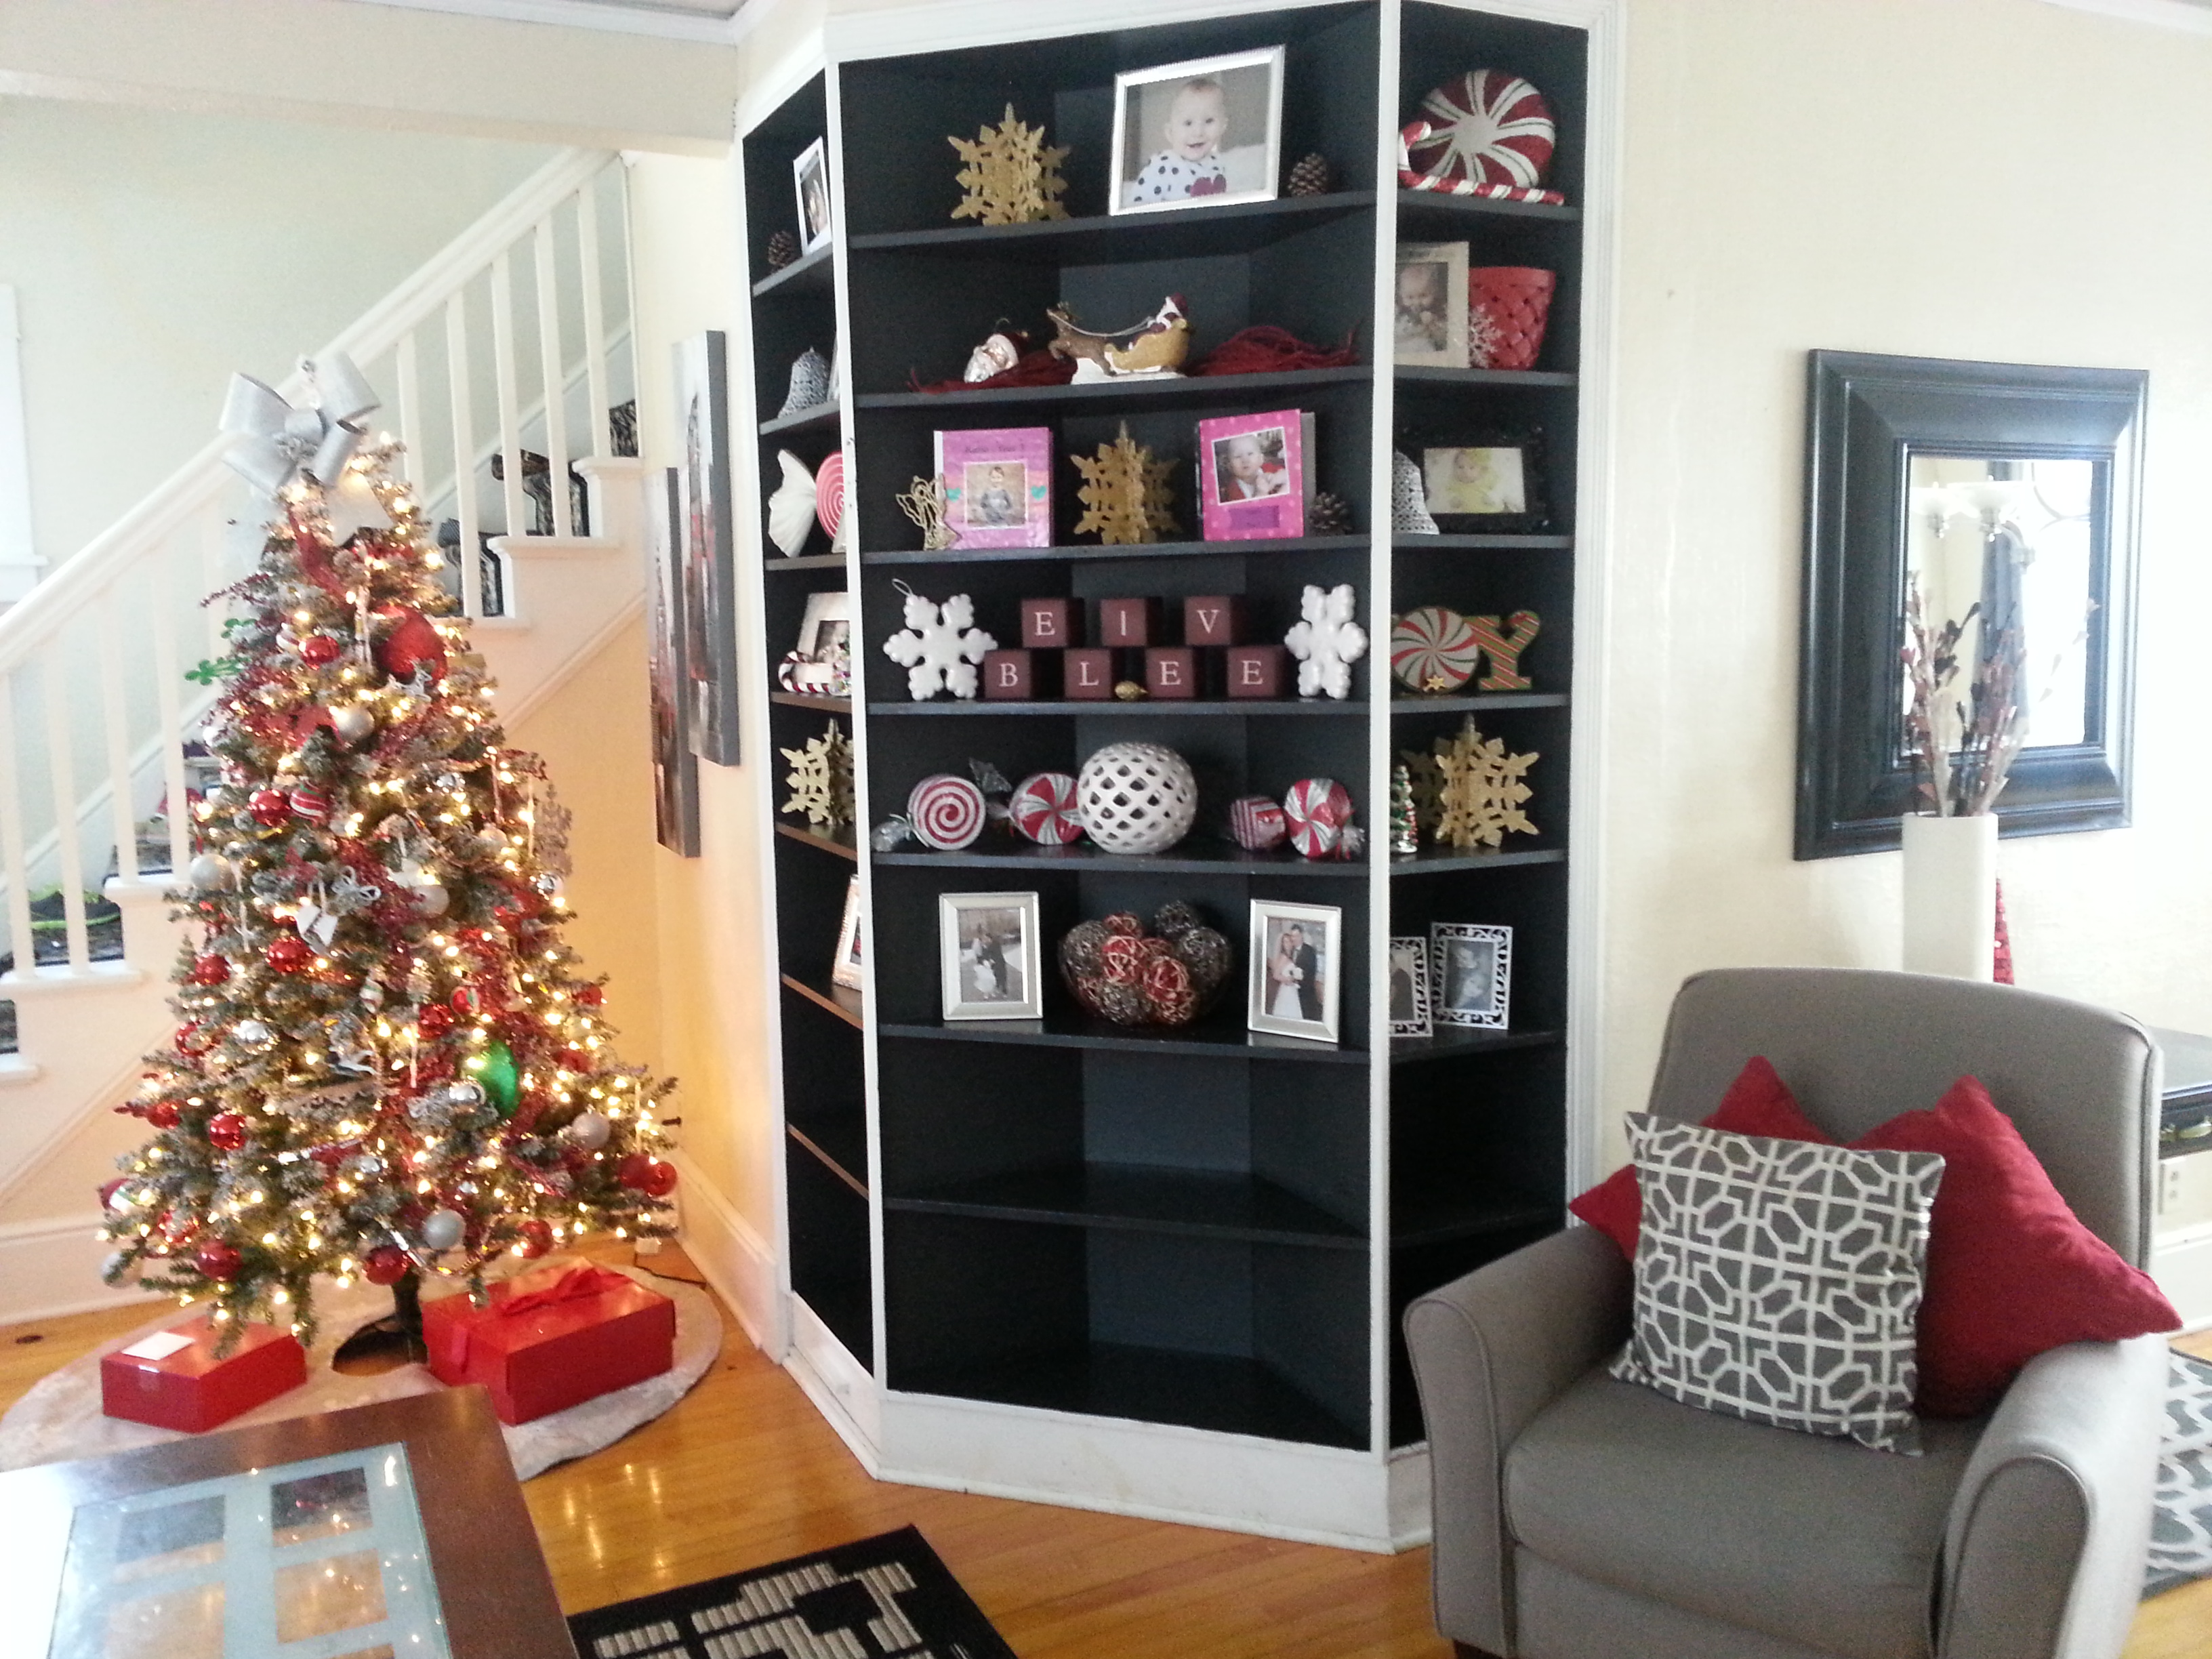 Christmas home decorations 2014 - Christmas Is Just Around The Corner Are You Ready I M Waiting For Several Packages To Come In The Mail Plus My Husband And I Have To Buy Couple Other